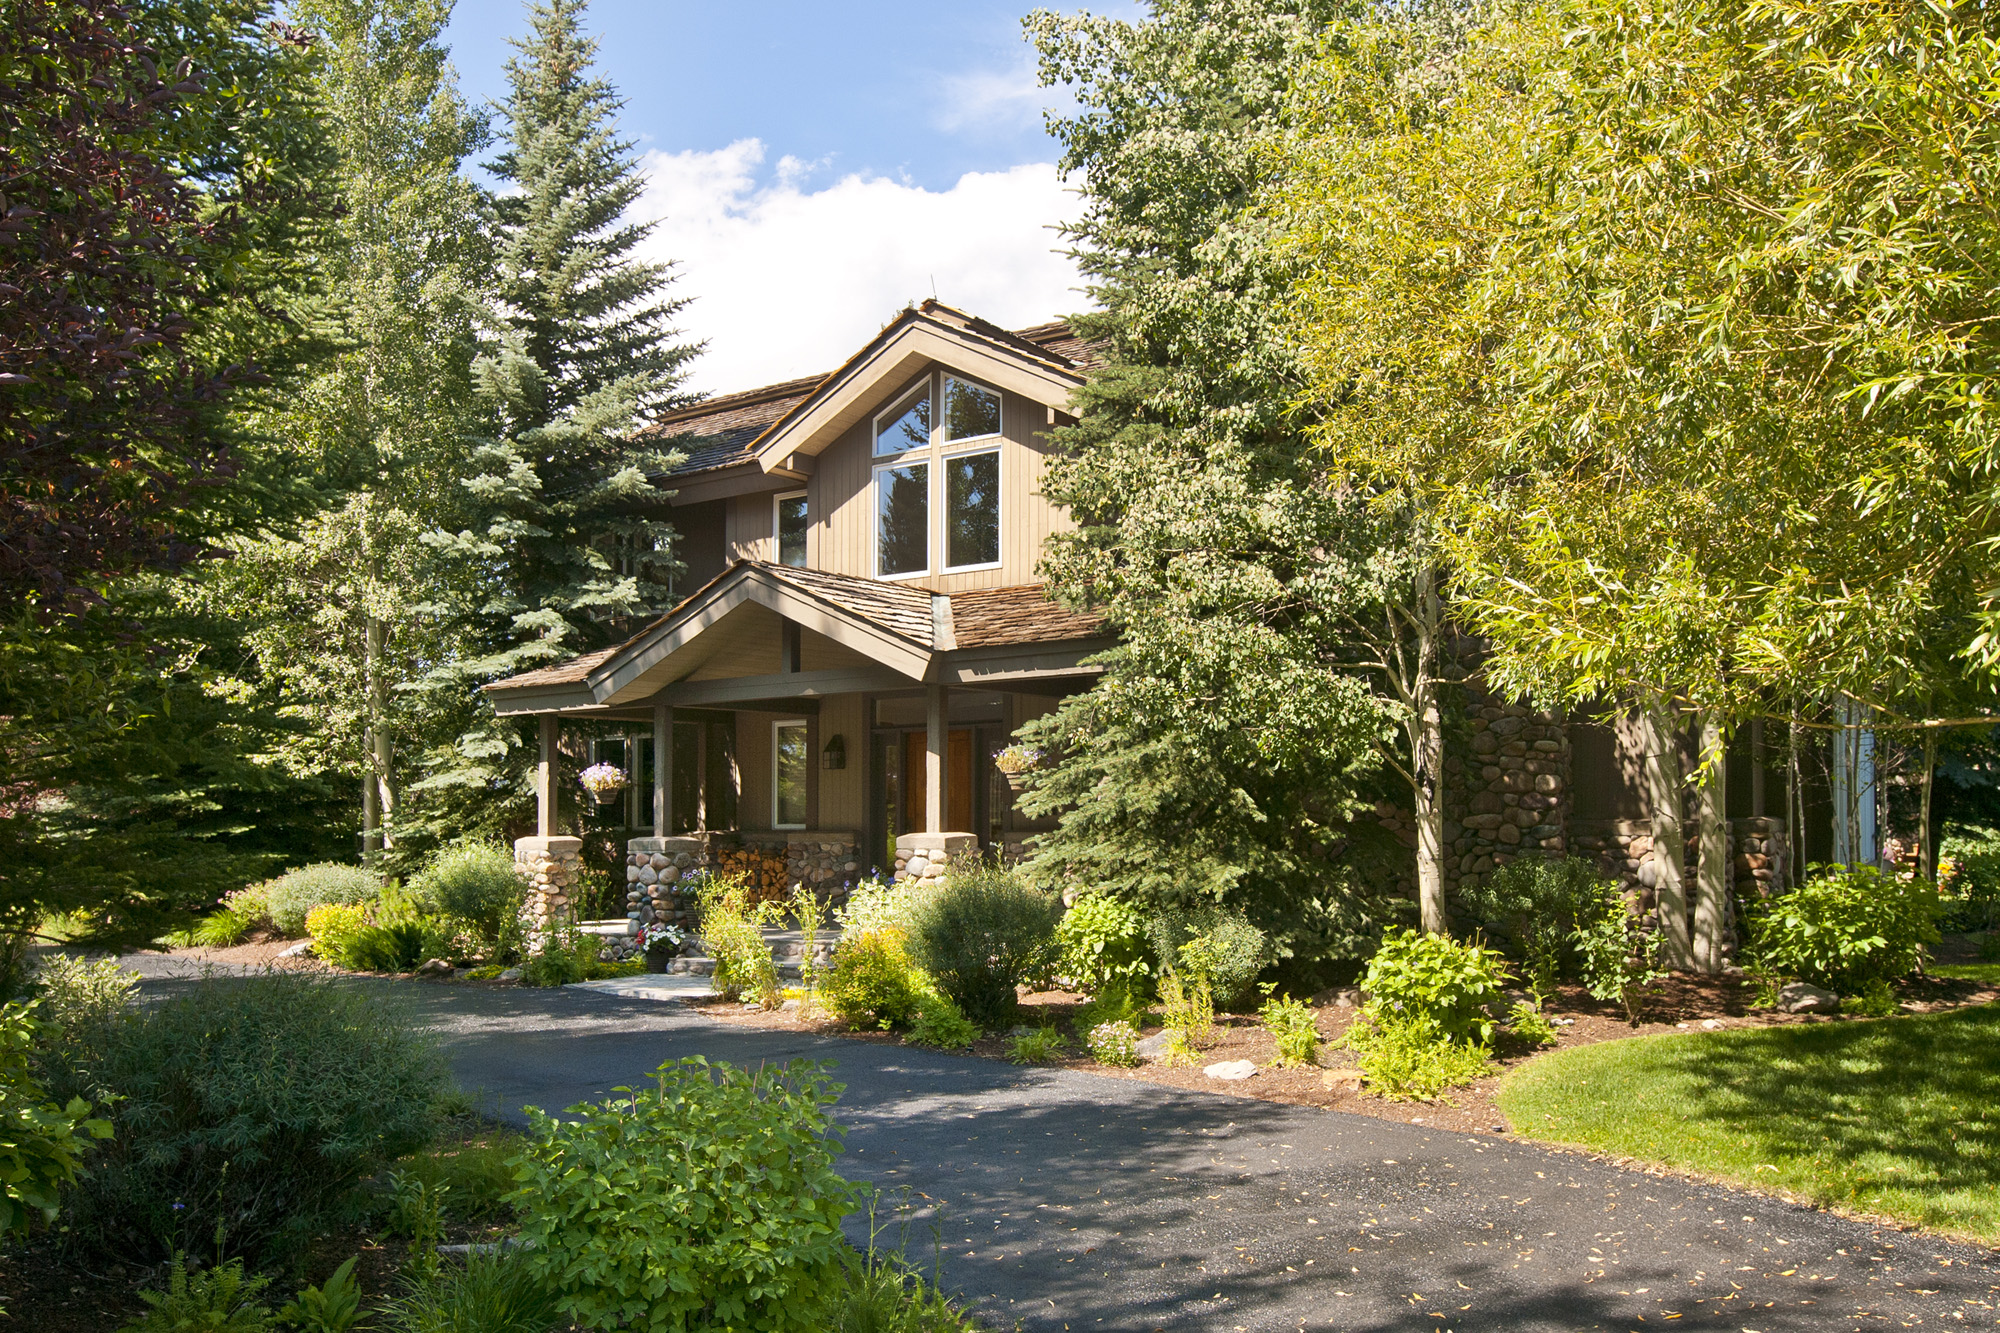 Property For Sale at Tranquility and Views in Teton Pines